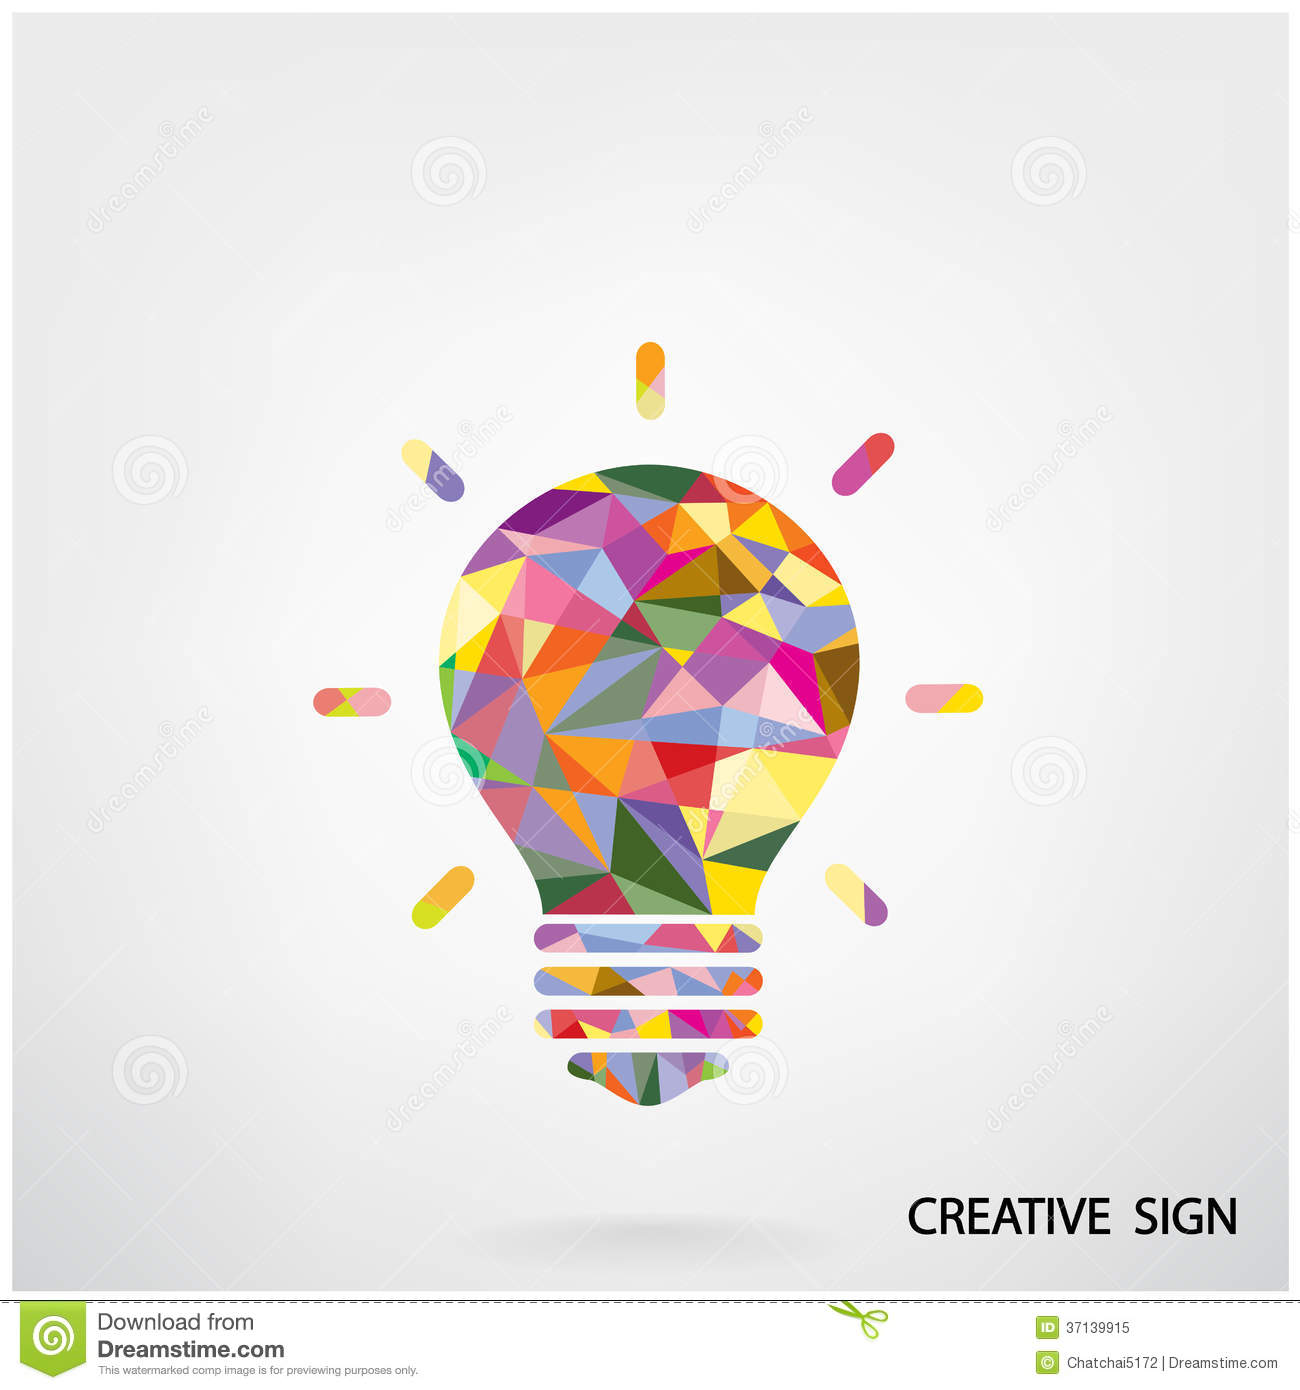 Colorful Creative Light Bulb Sign Royalty Free Stock Photo ...